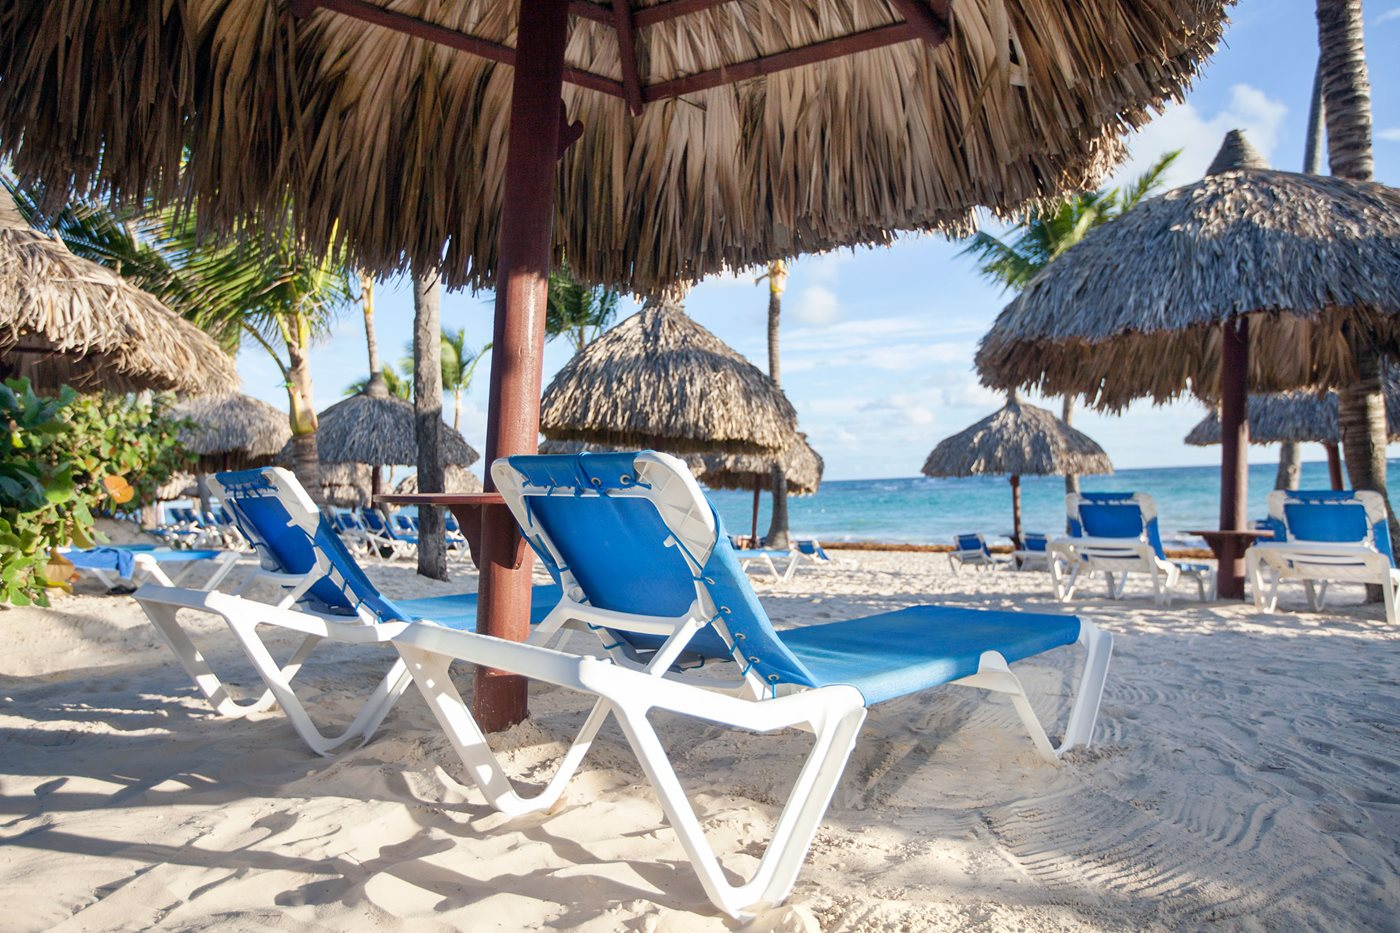 Activities and excursions - Grand Bahia Principe Punta